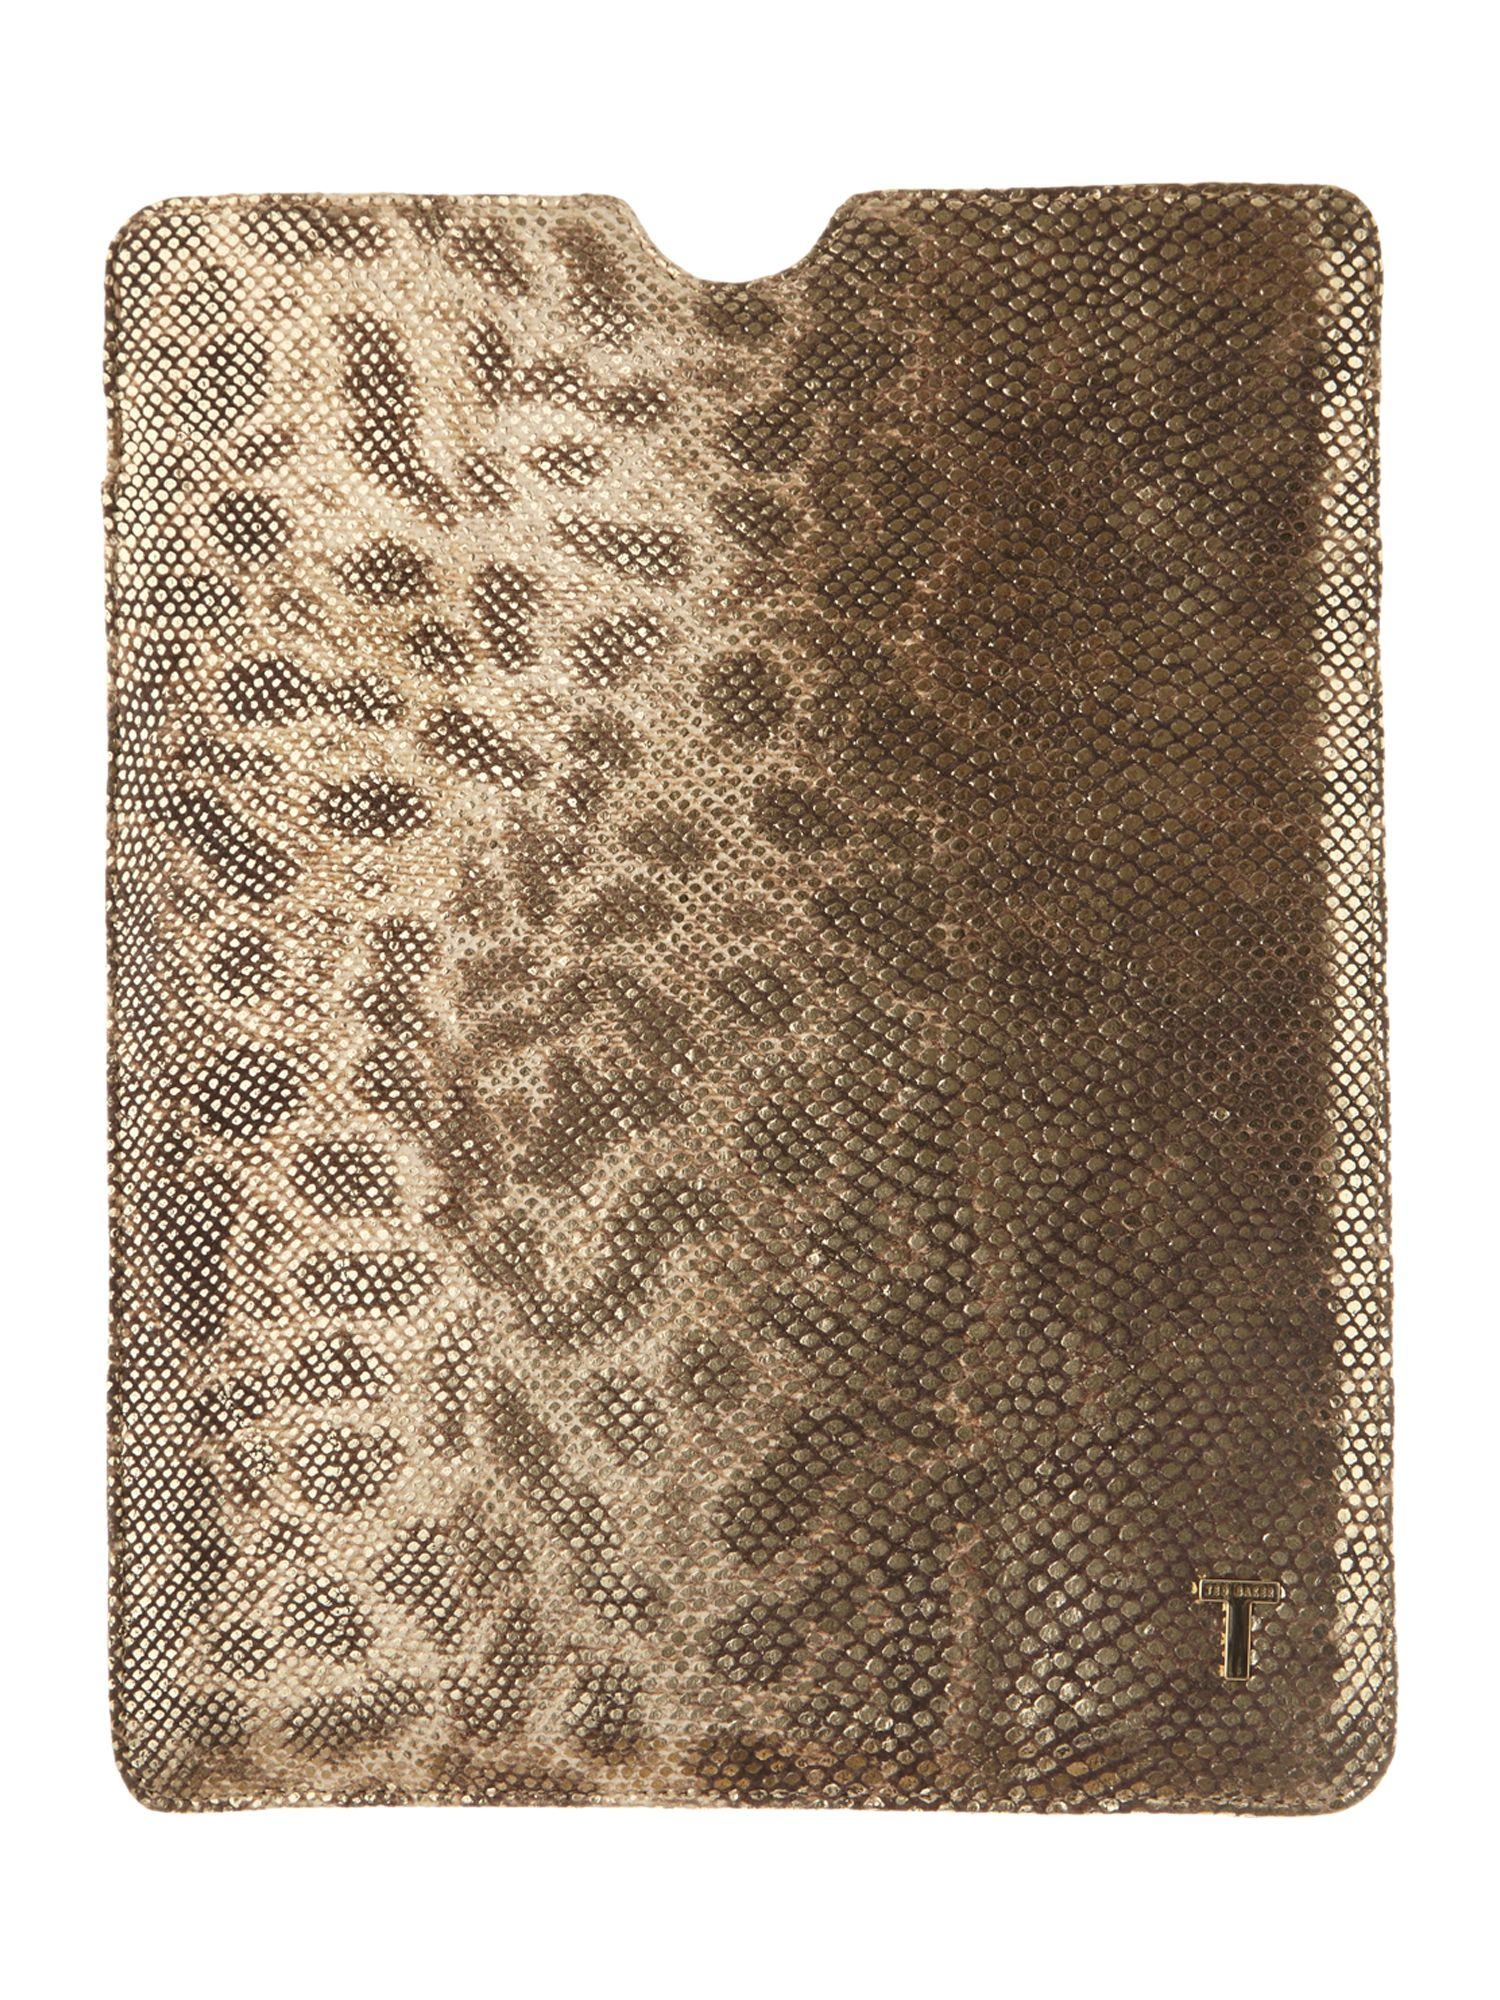 Snake iPad sleeve